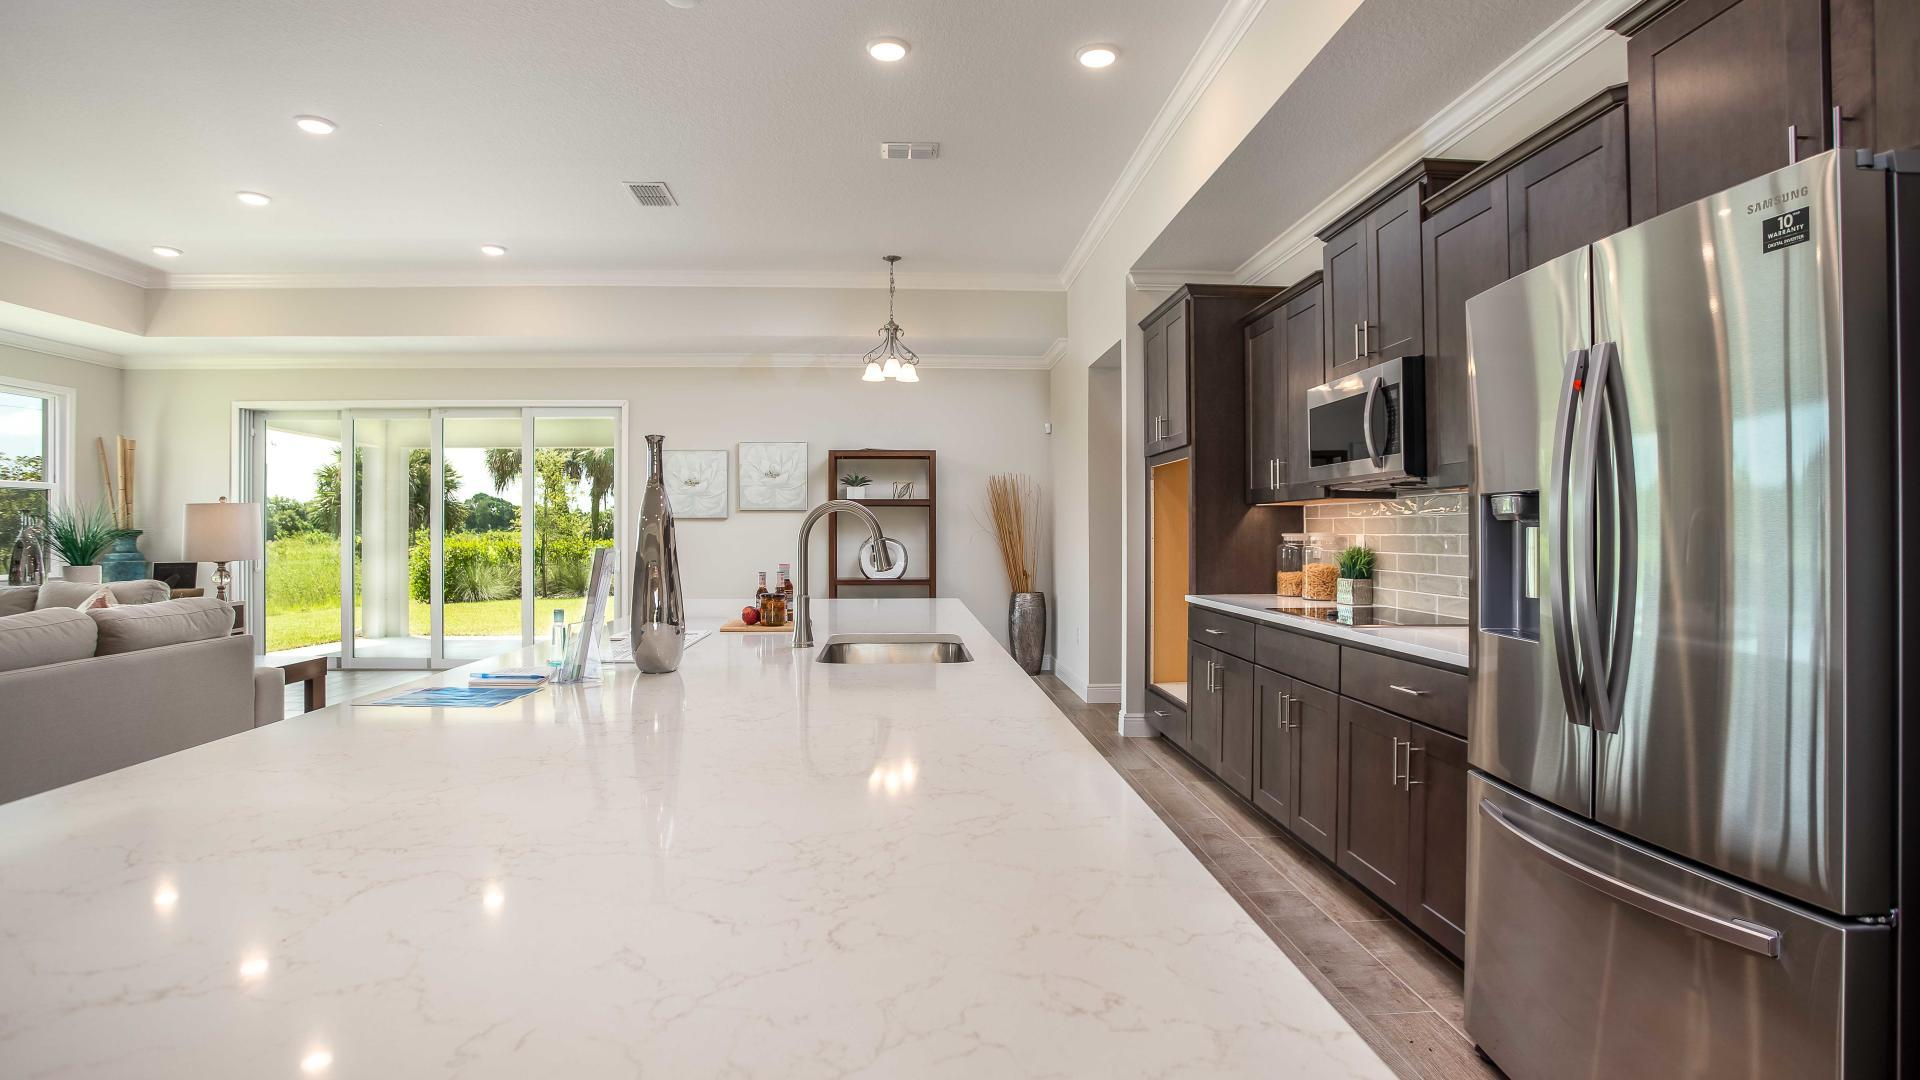 Living Area featured in the Sienna By Maronda Homes in Ocala, FL